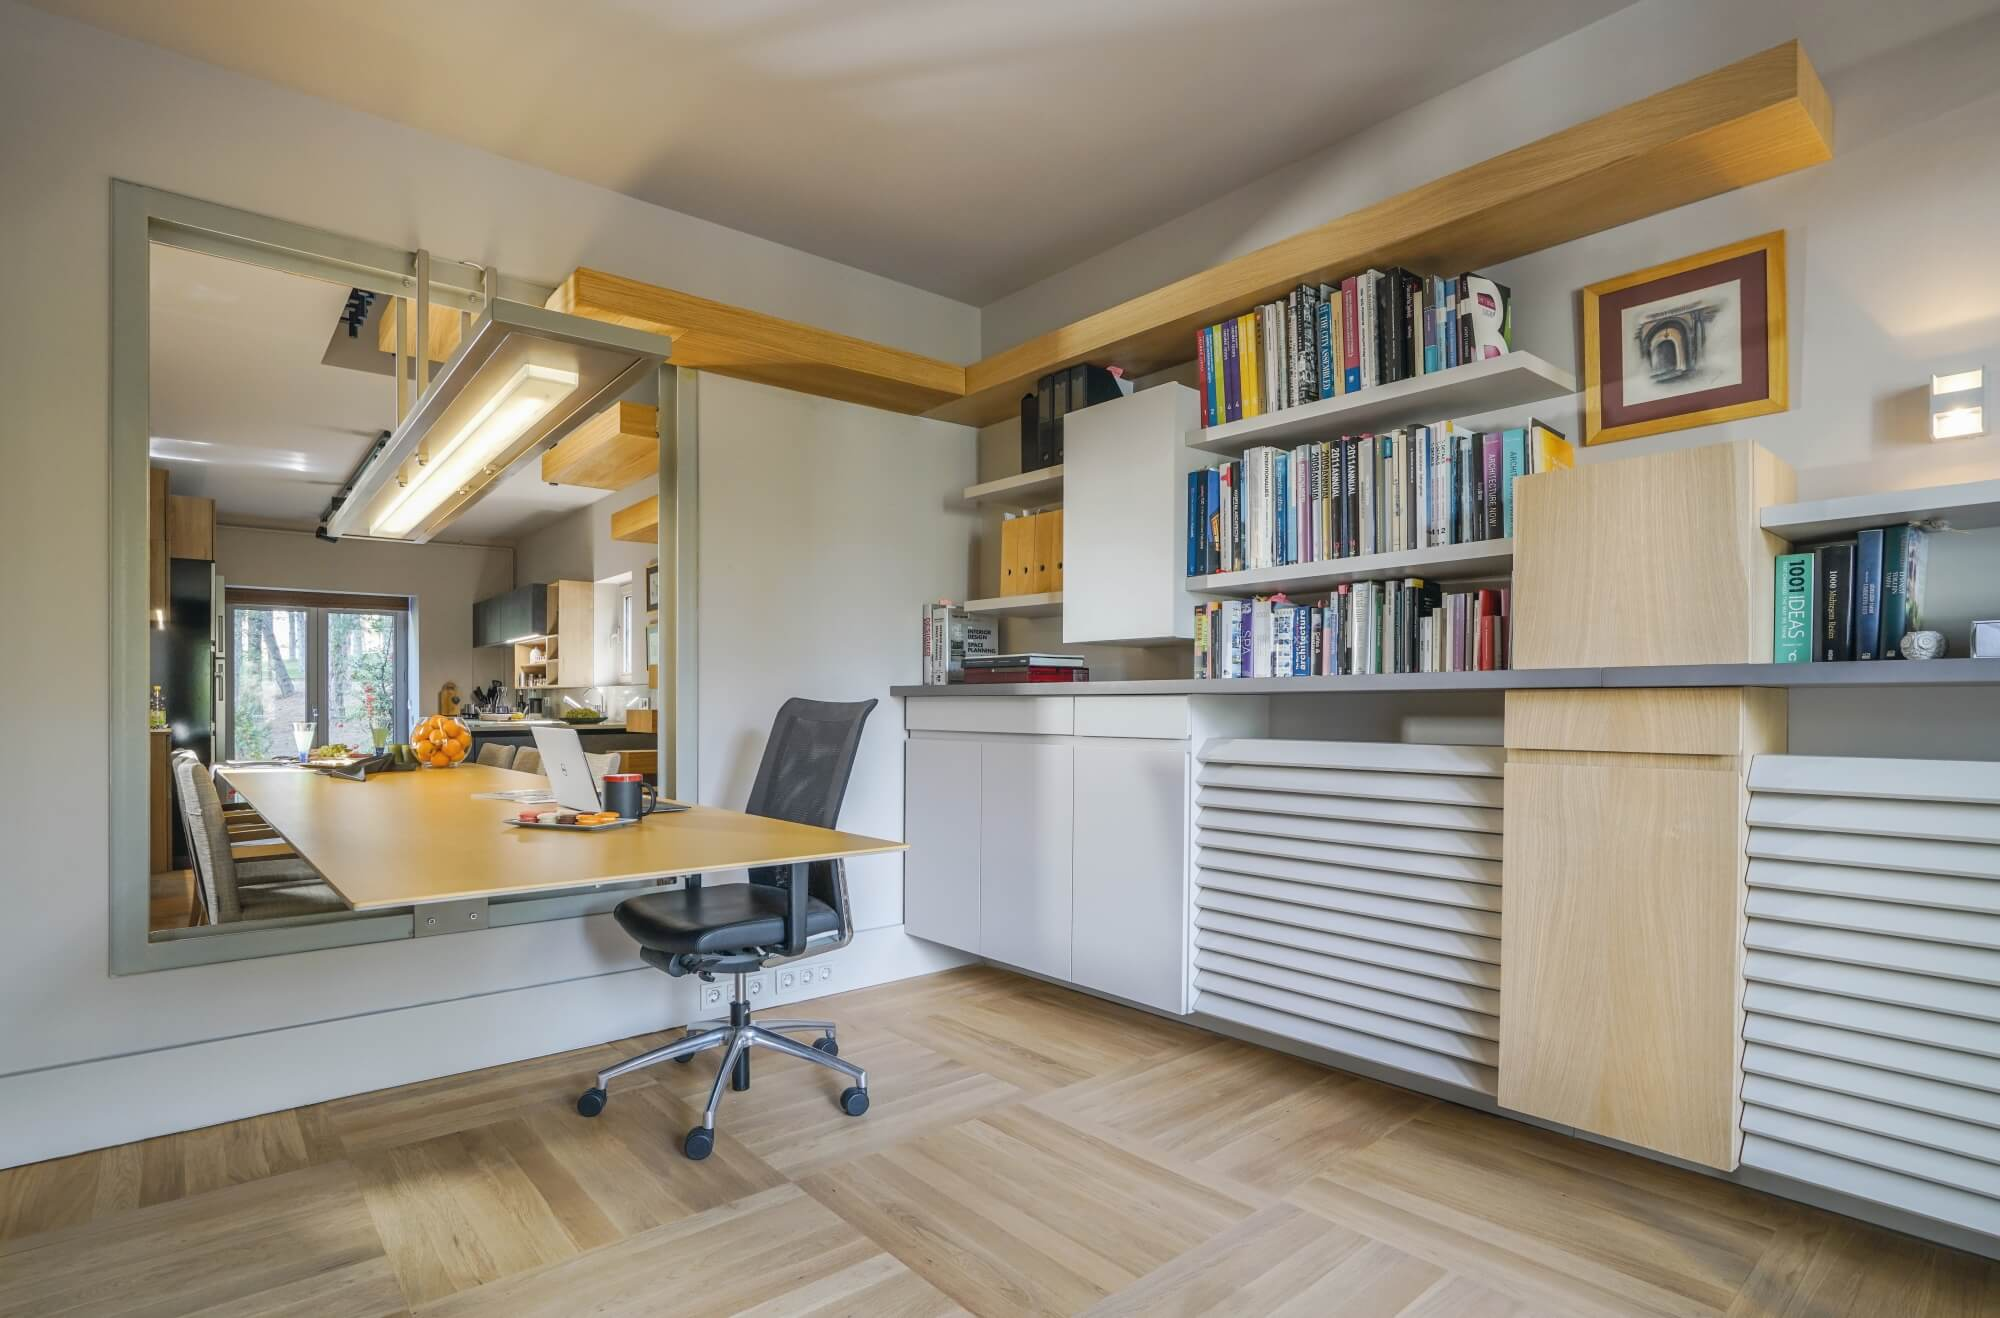 Home office with desk passing through a window for use in and out of the office.